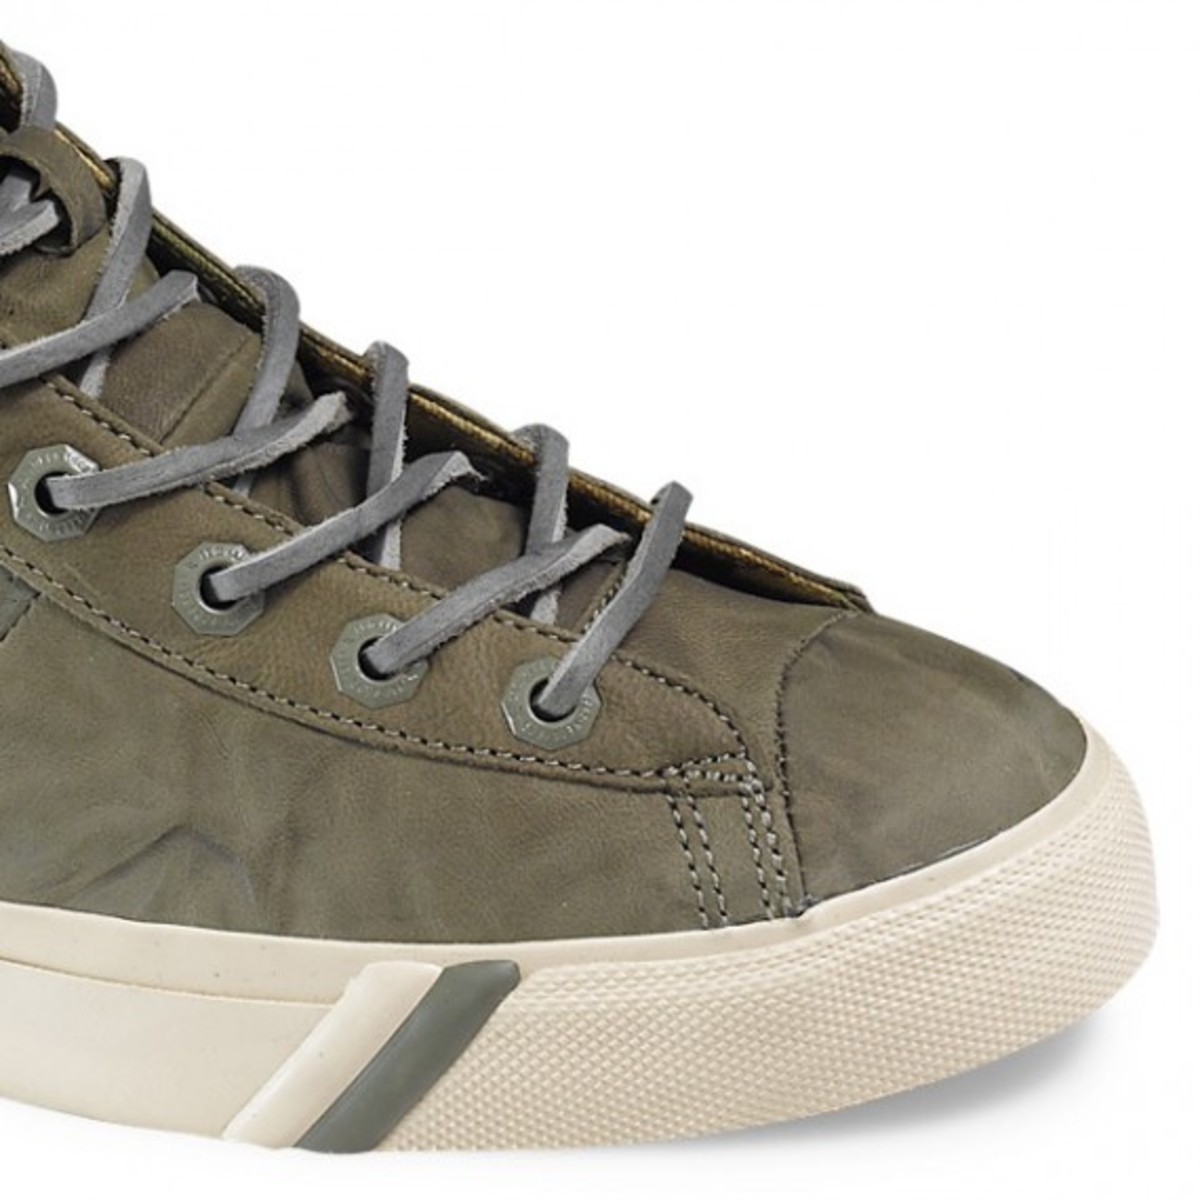 royal-plus-hi-nubuck-04